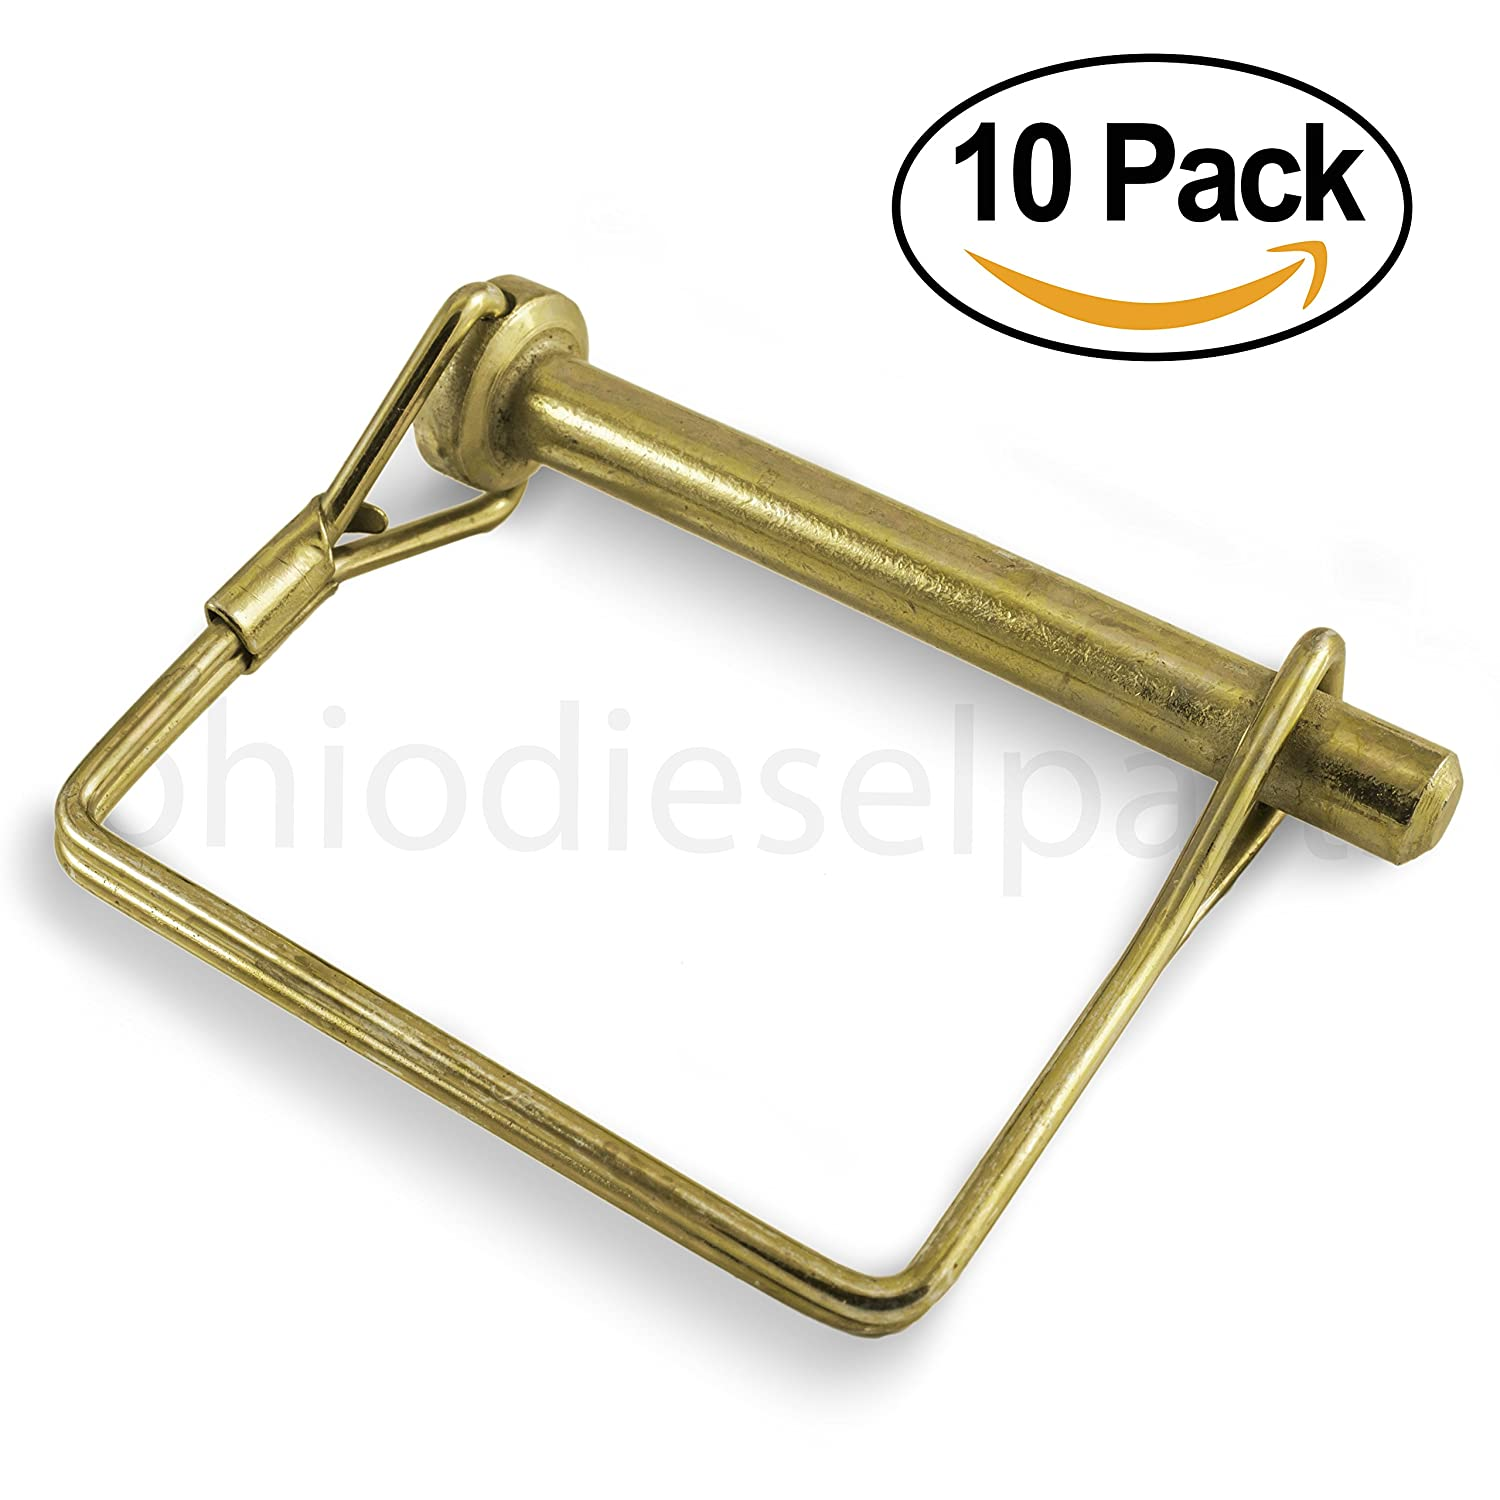 Locking Pins | Amazon.com